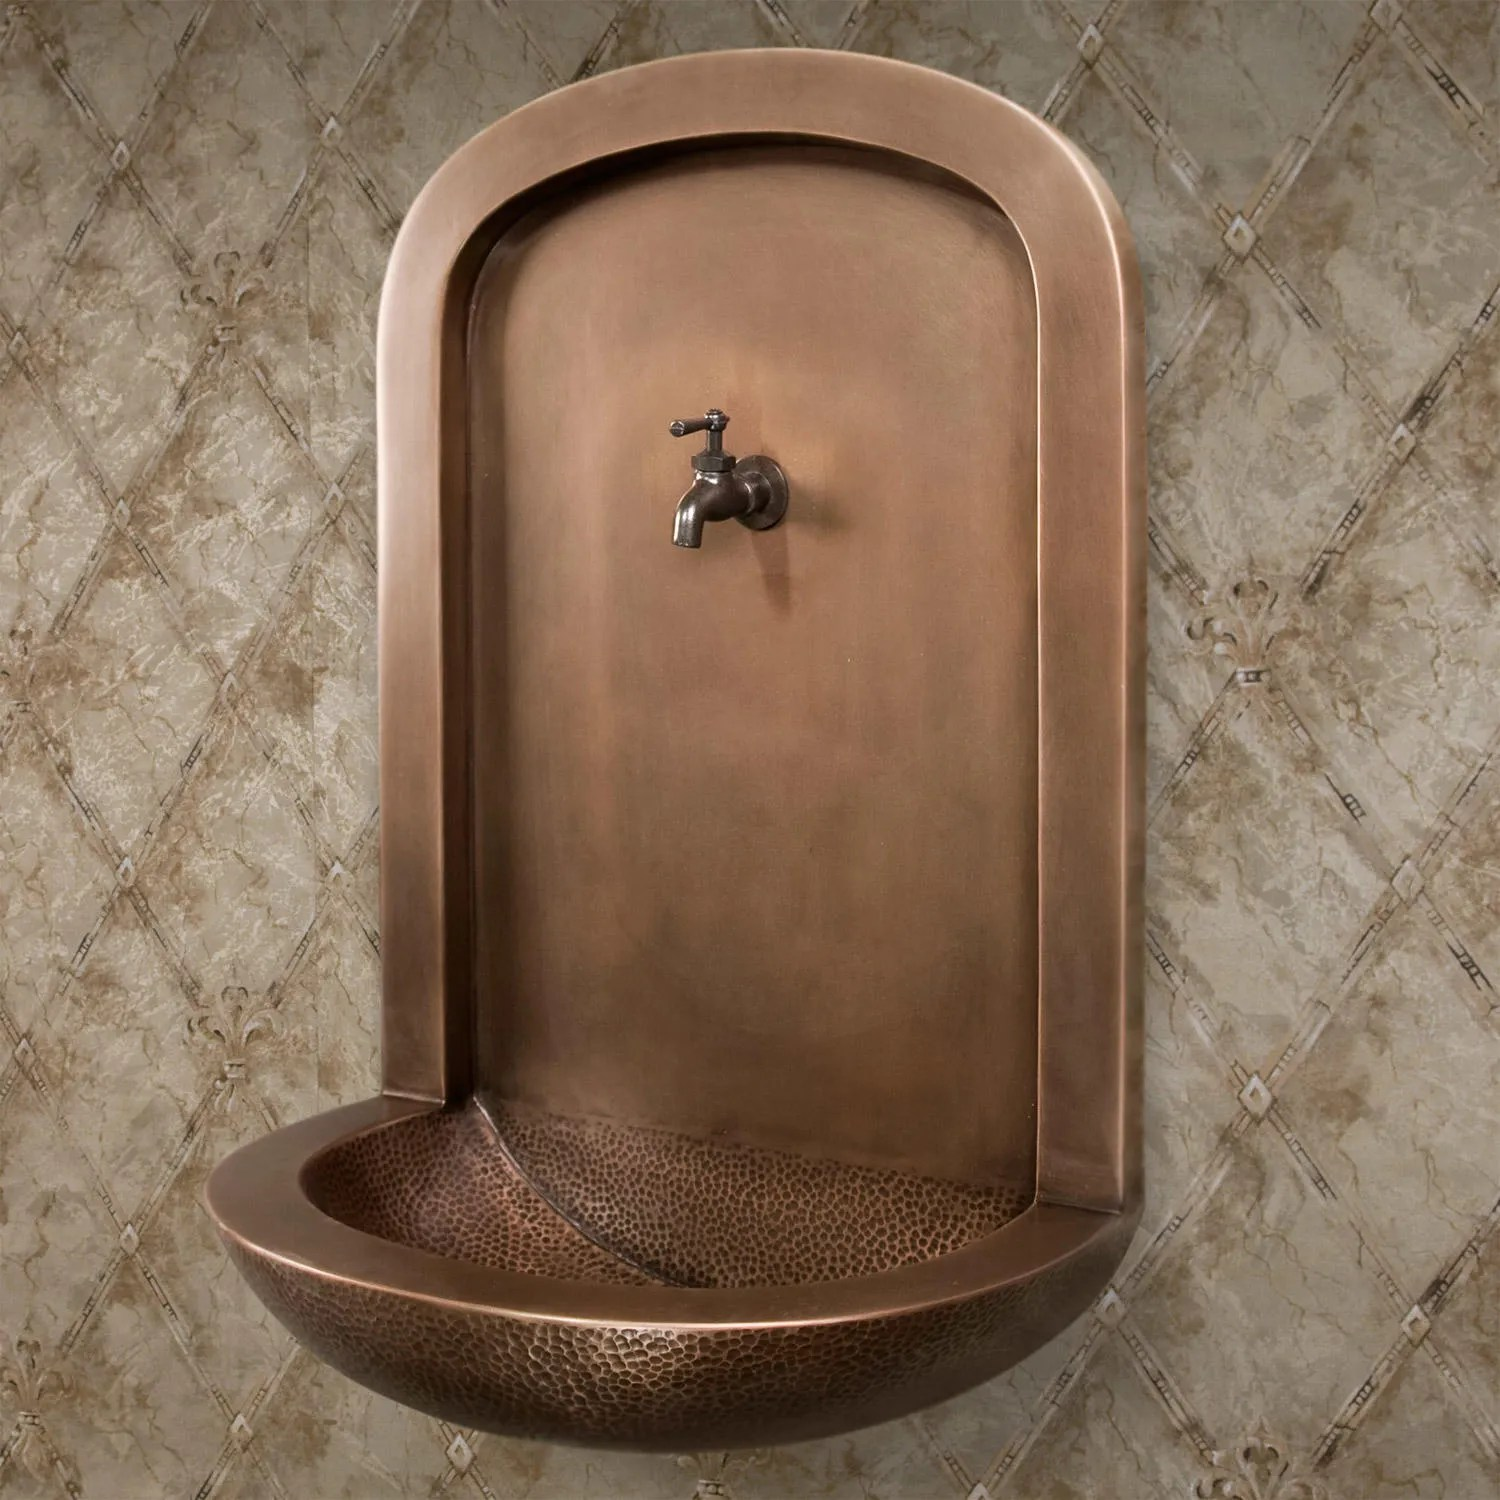 Double Sink Copper Wall Fountain with Faucet  Outdoor